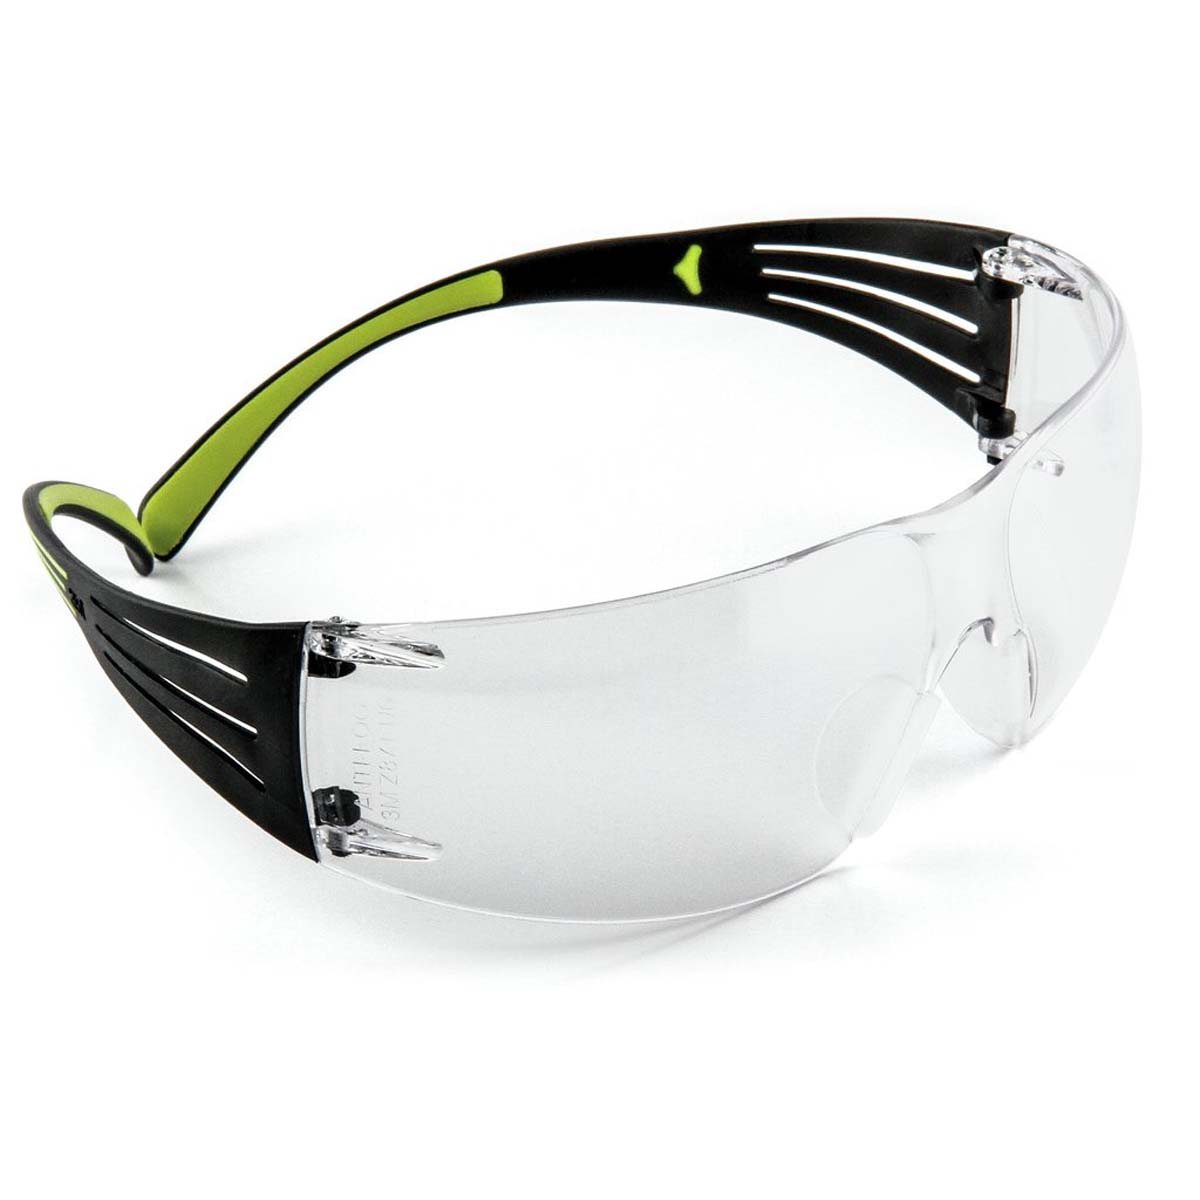 "3Mâ""¢ SecureFitâ""¢ Protective Eyewear SF401AF, Clear Anti-fog Lens,"